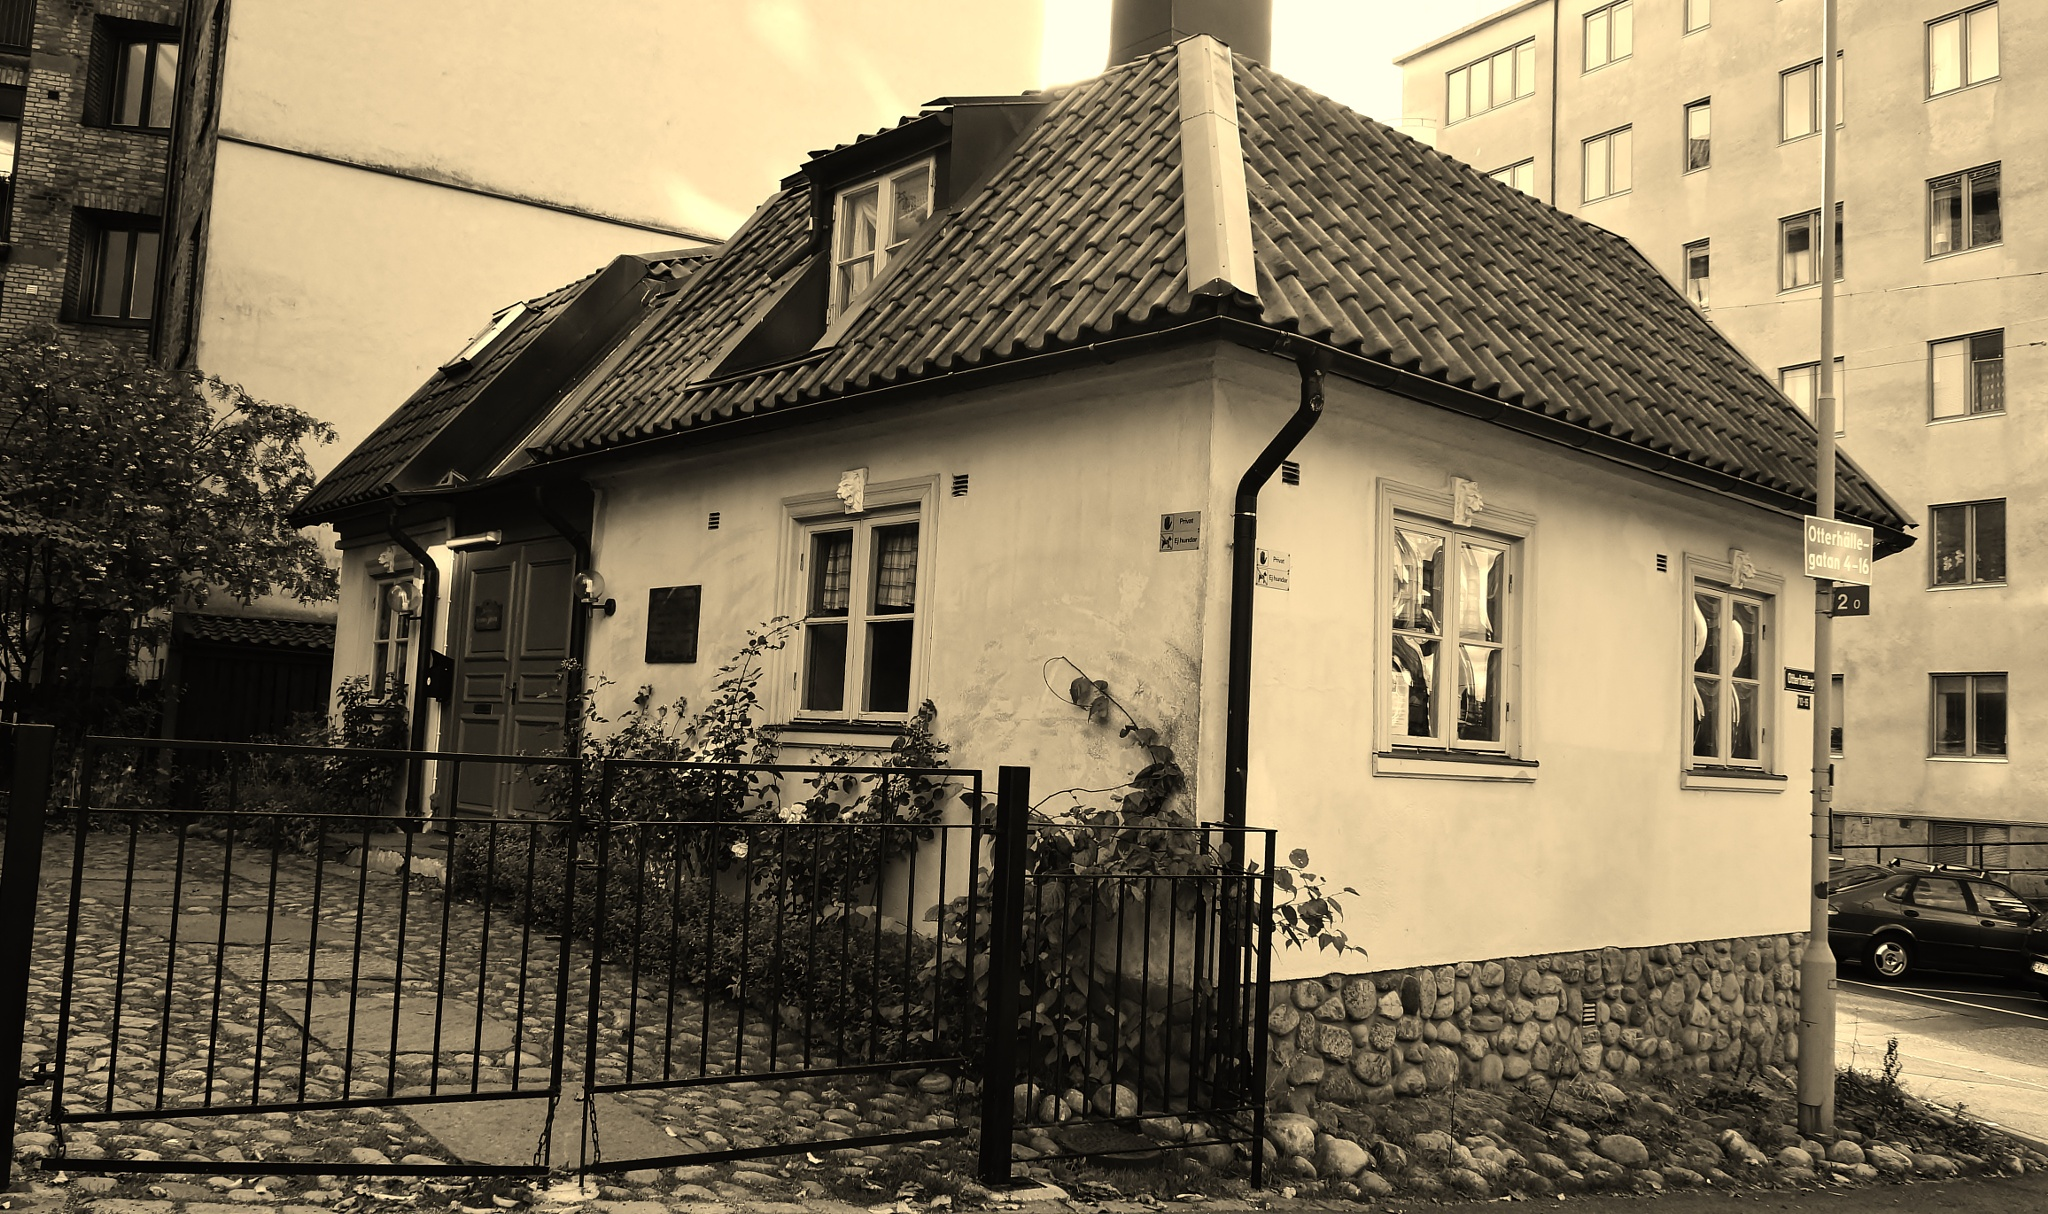 Queen Christinas hunting-villa in central city - edited in b&w sepia by rolf persson